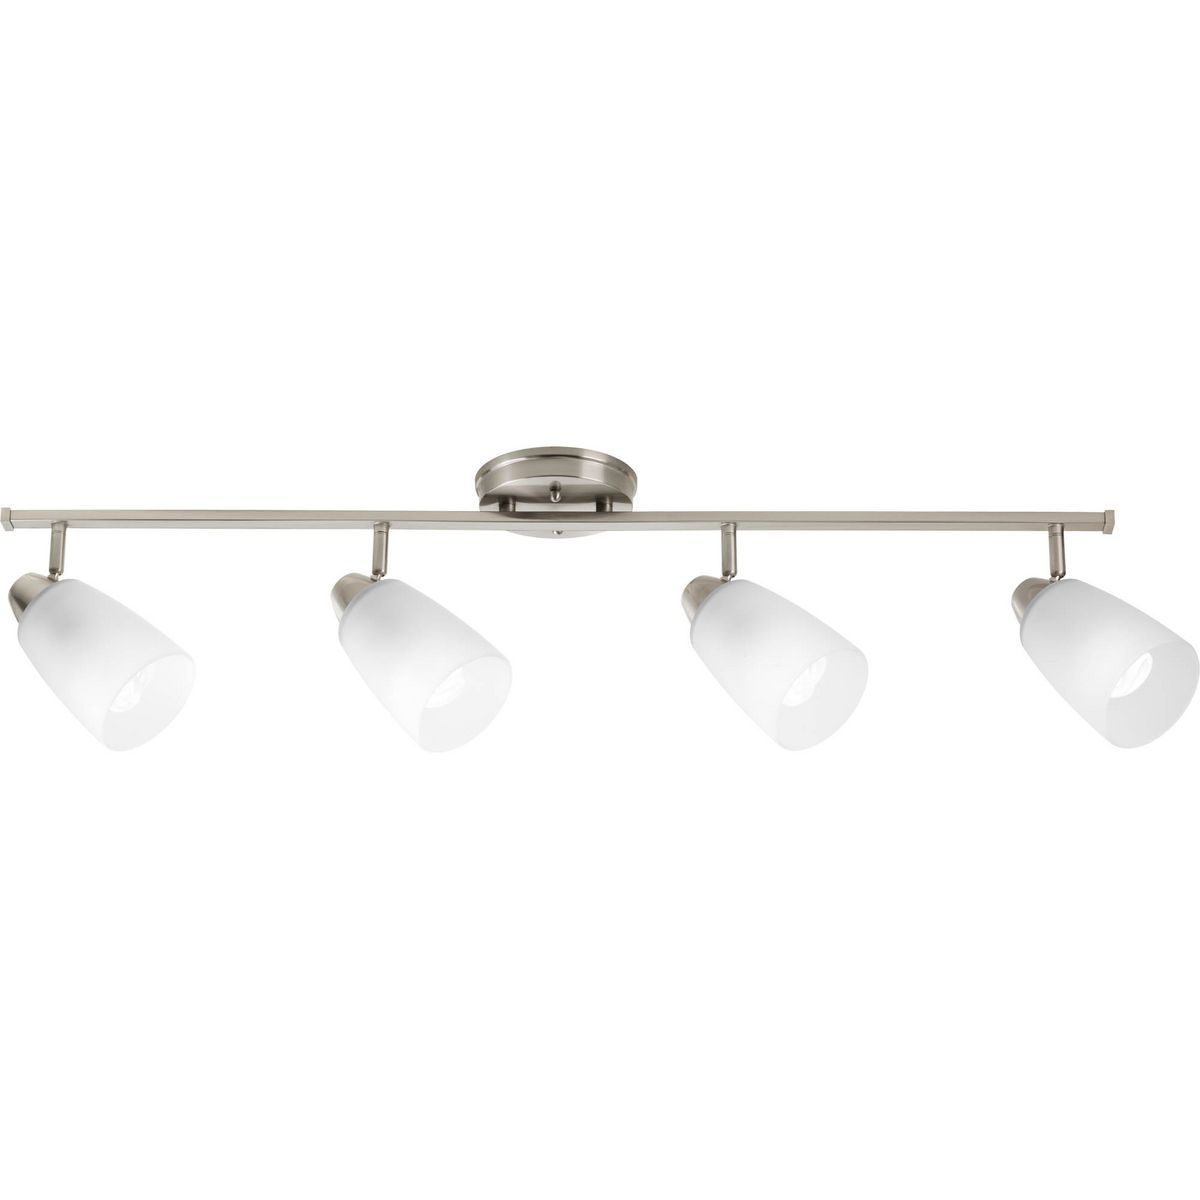 Wisten Collection Four-Light Directional